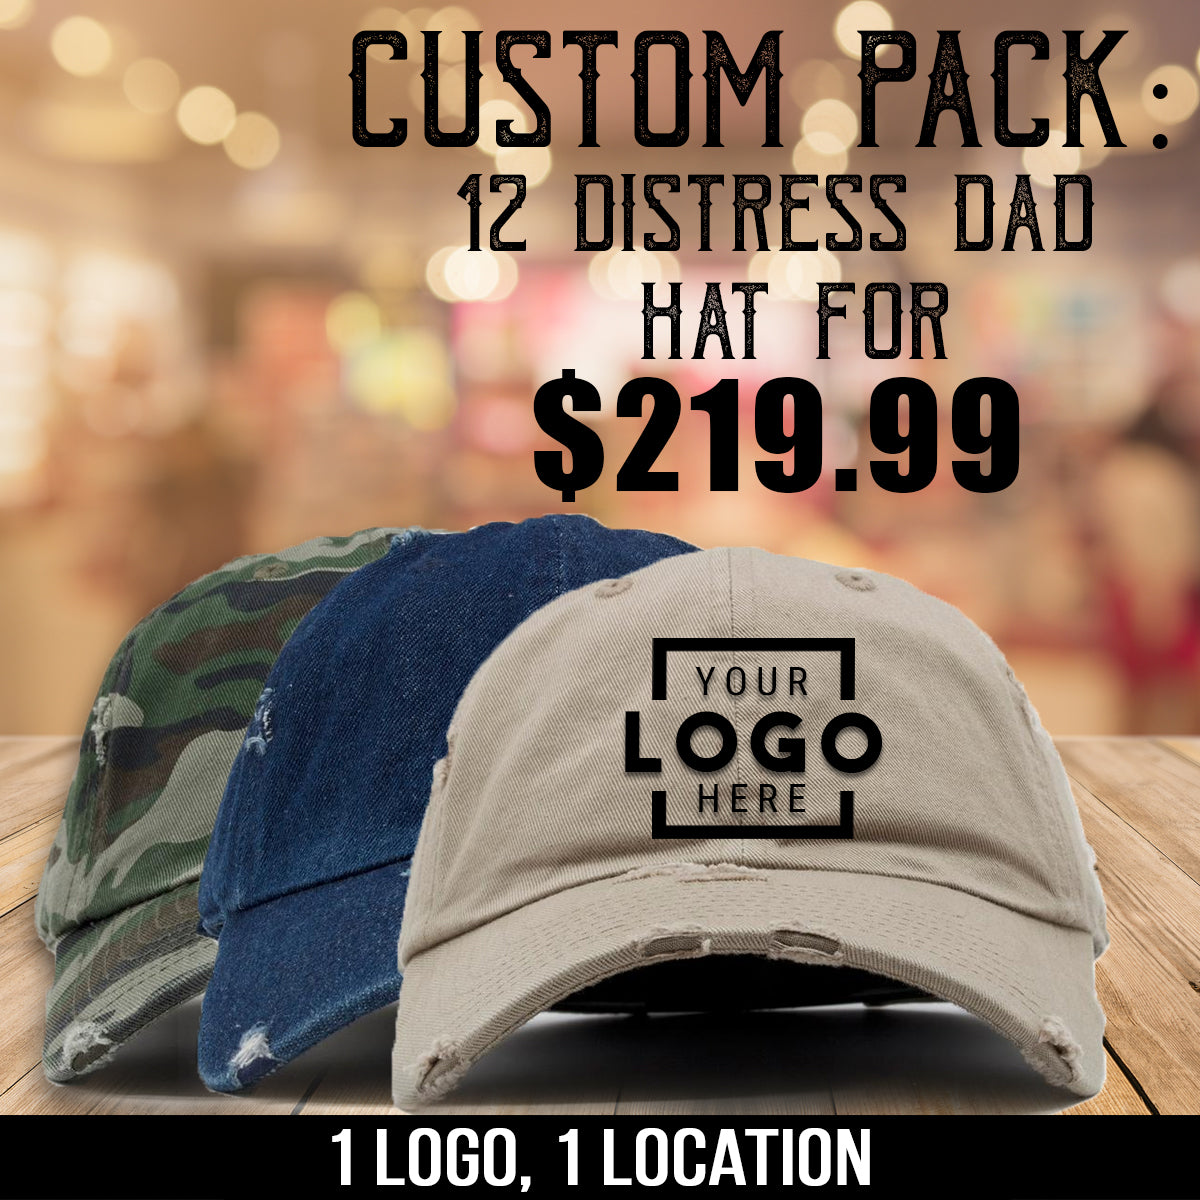 Get 12 distressed dad hats embroidered for $219.99